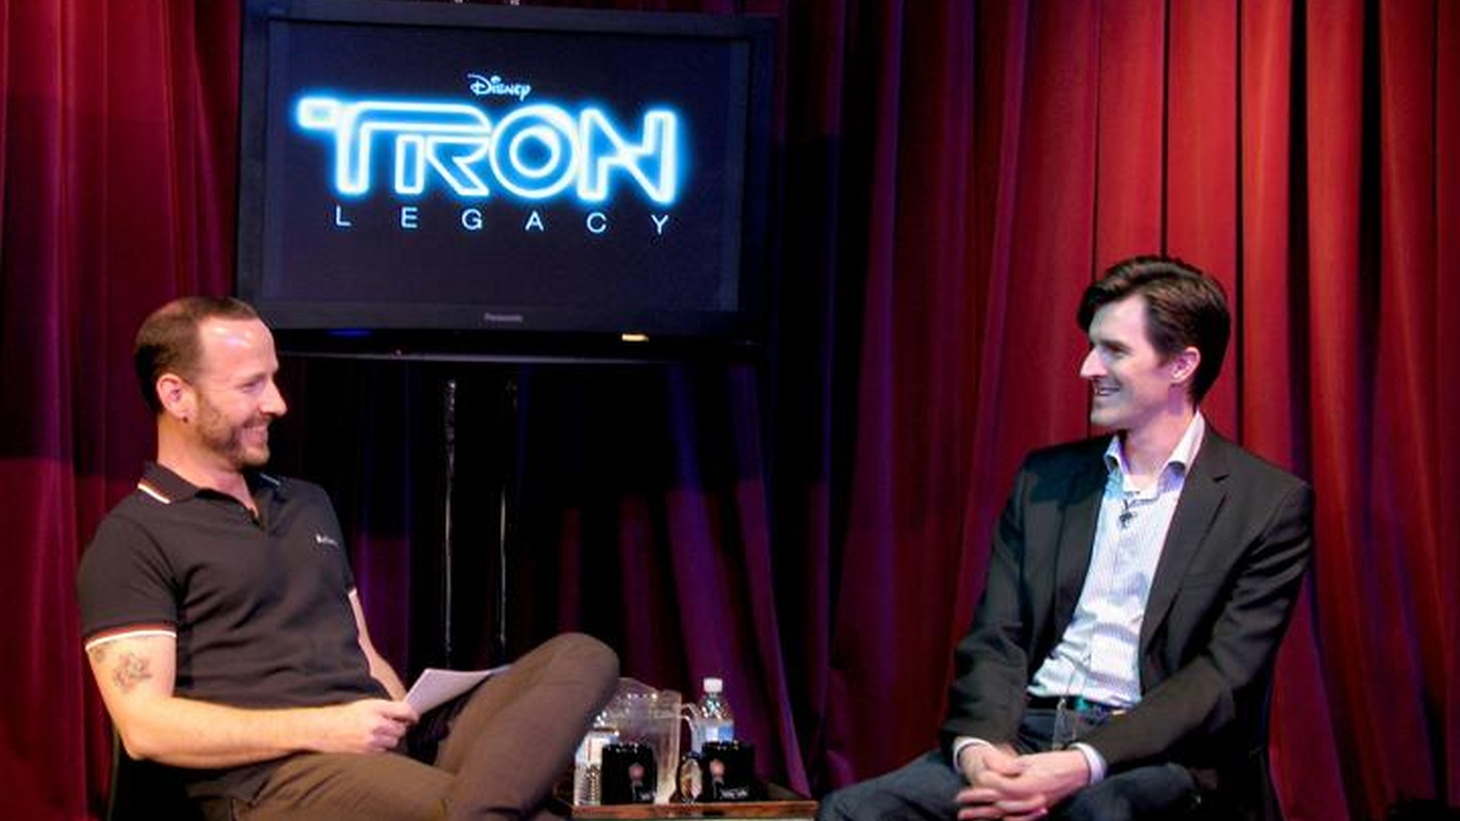 Jason Bentley presents an exclusive Tron: Legacy soundtrack preview when he talks with director Joseph Kosinski about the much anticipated film and shares highlights from Daft Punk's score in the 10 o'clock hour on Morning Becomes Eclectic.